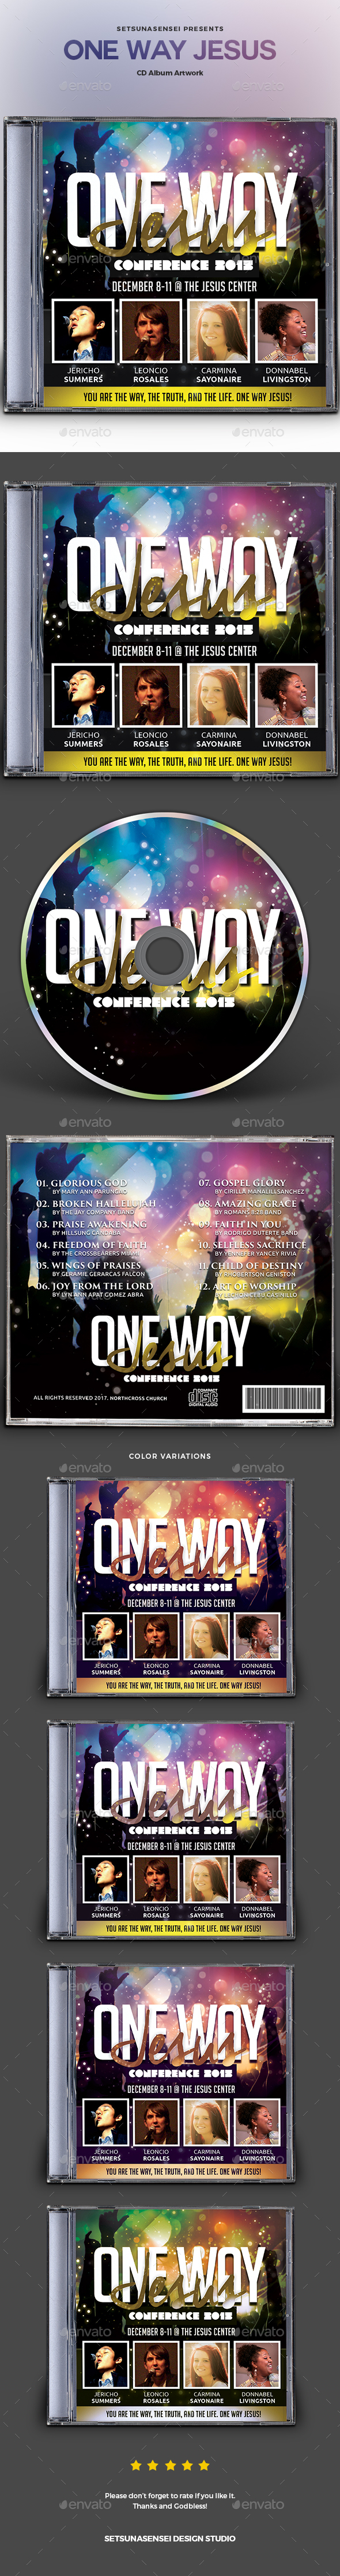 One Way Jesus CD Album Artwork - CD & DVD Artwork Print Templates